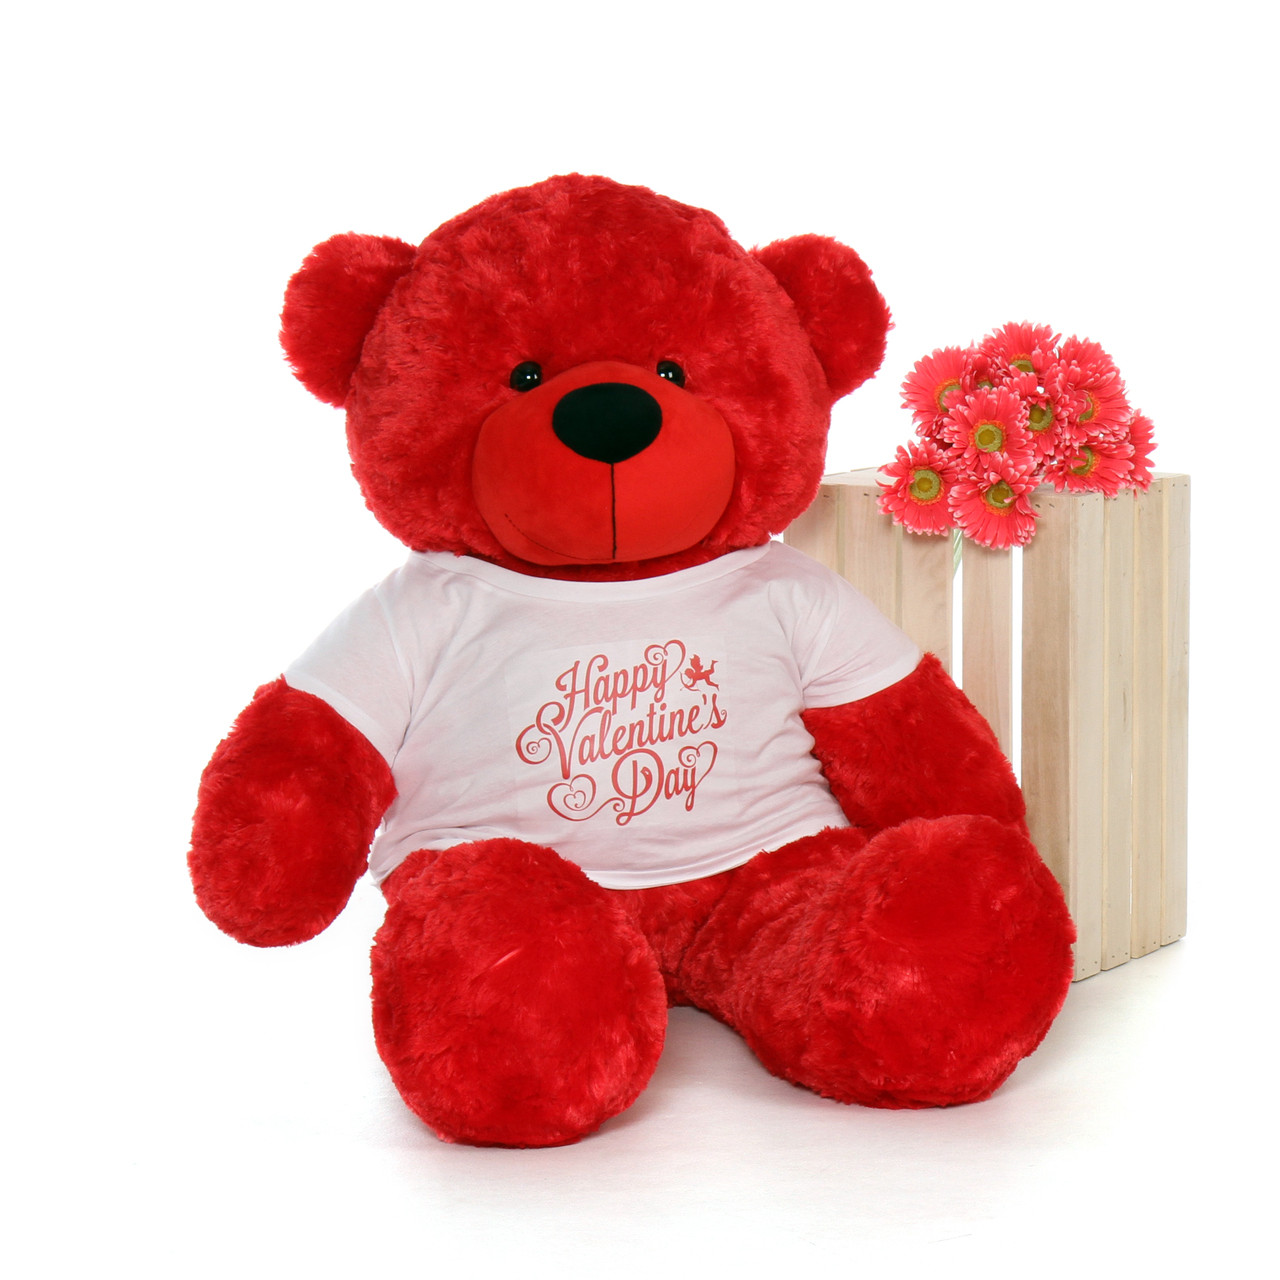 4ft Life Size Teddy Bear Wearing Happy Valentine S Day Shirt